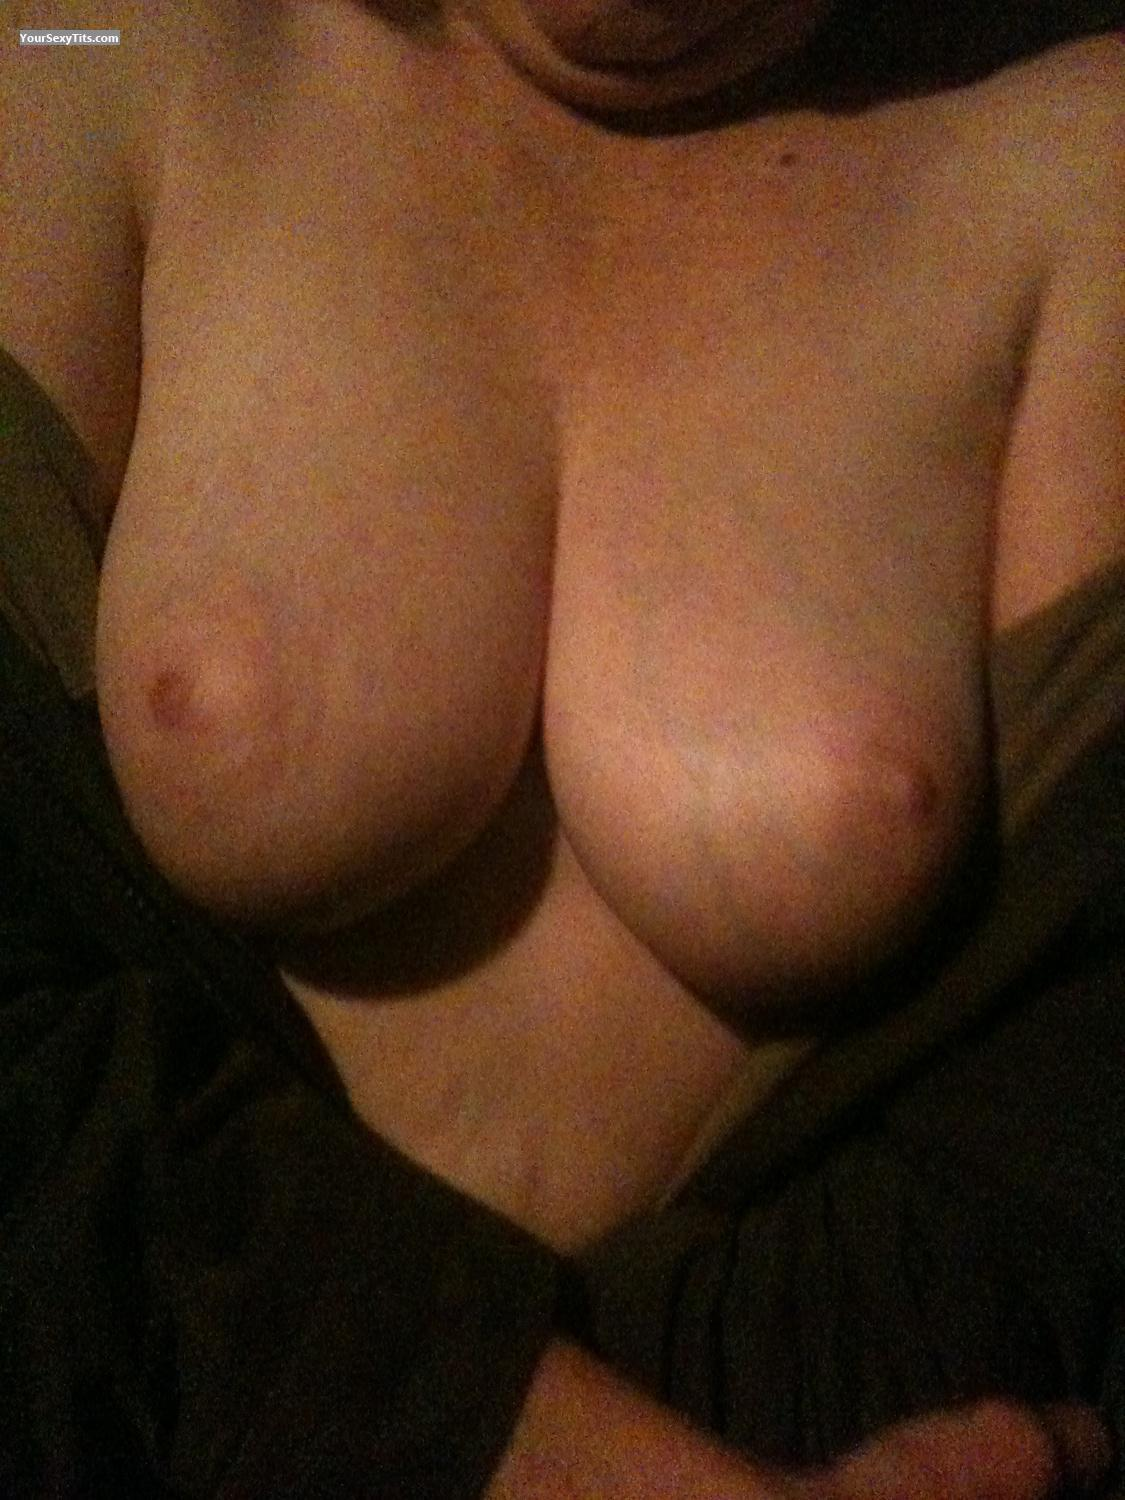 Medium Tits On